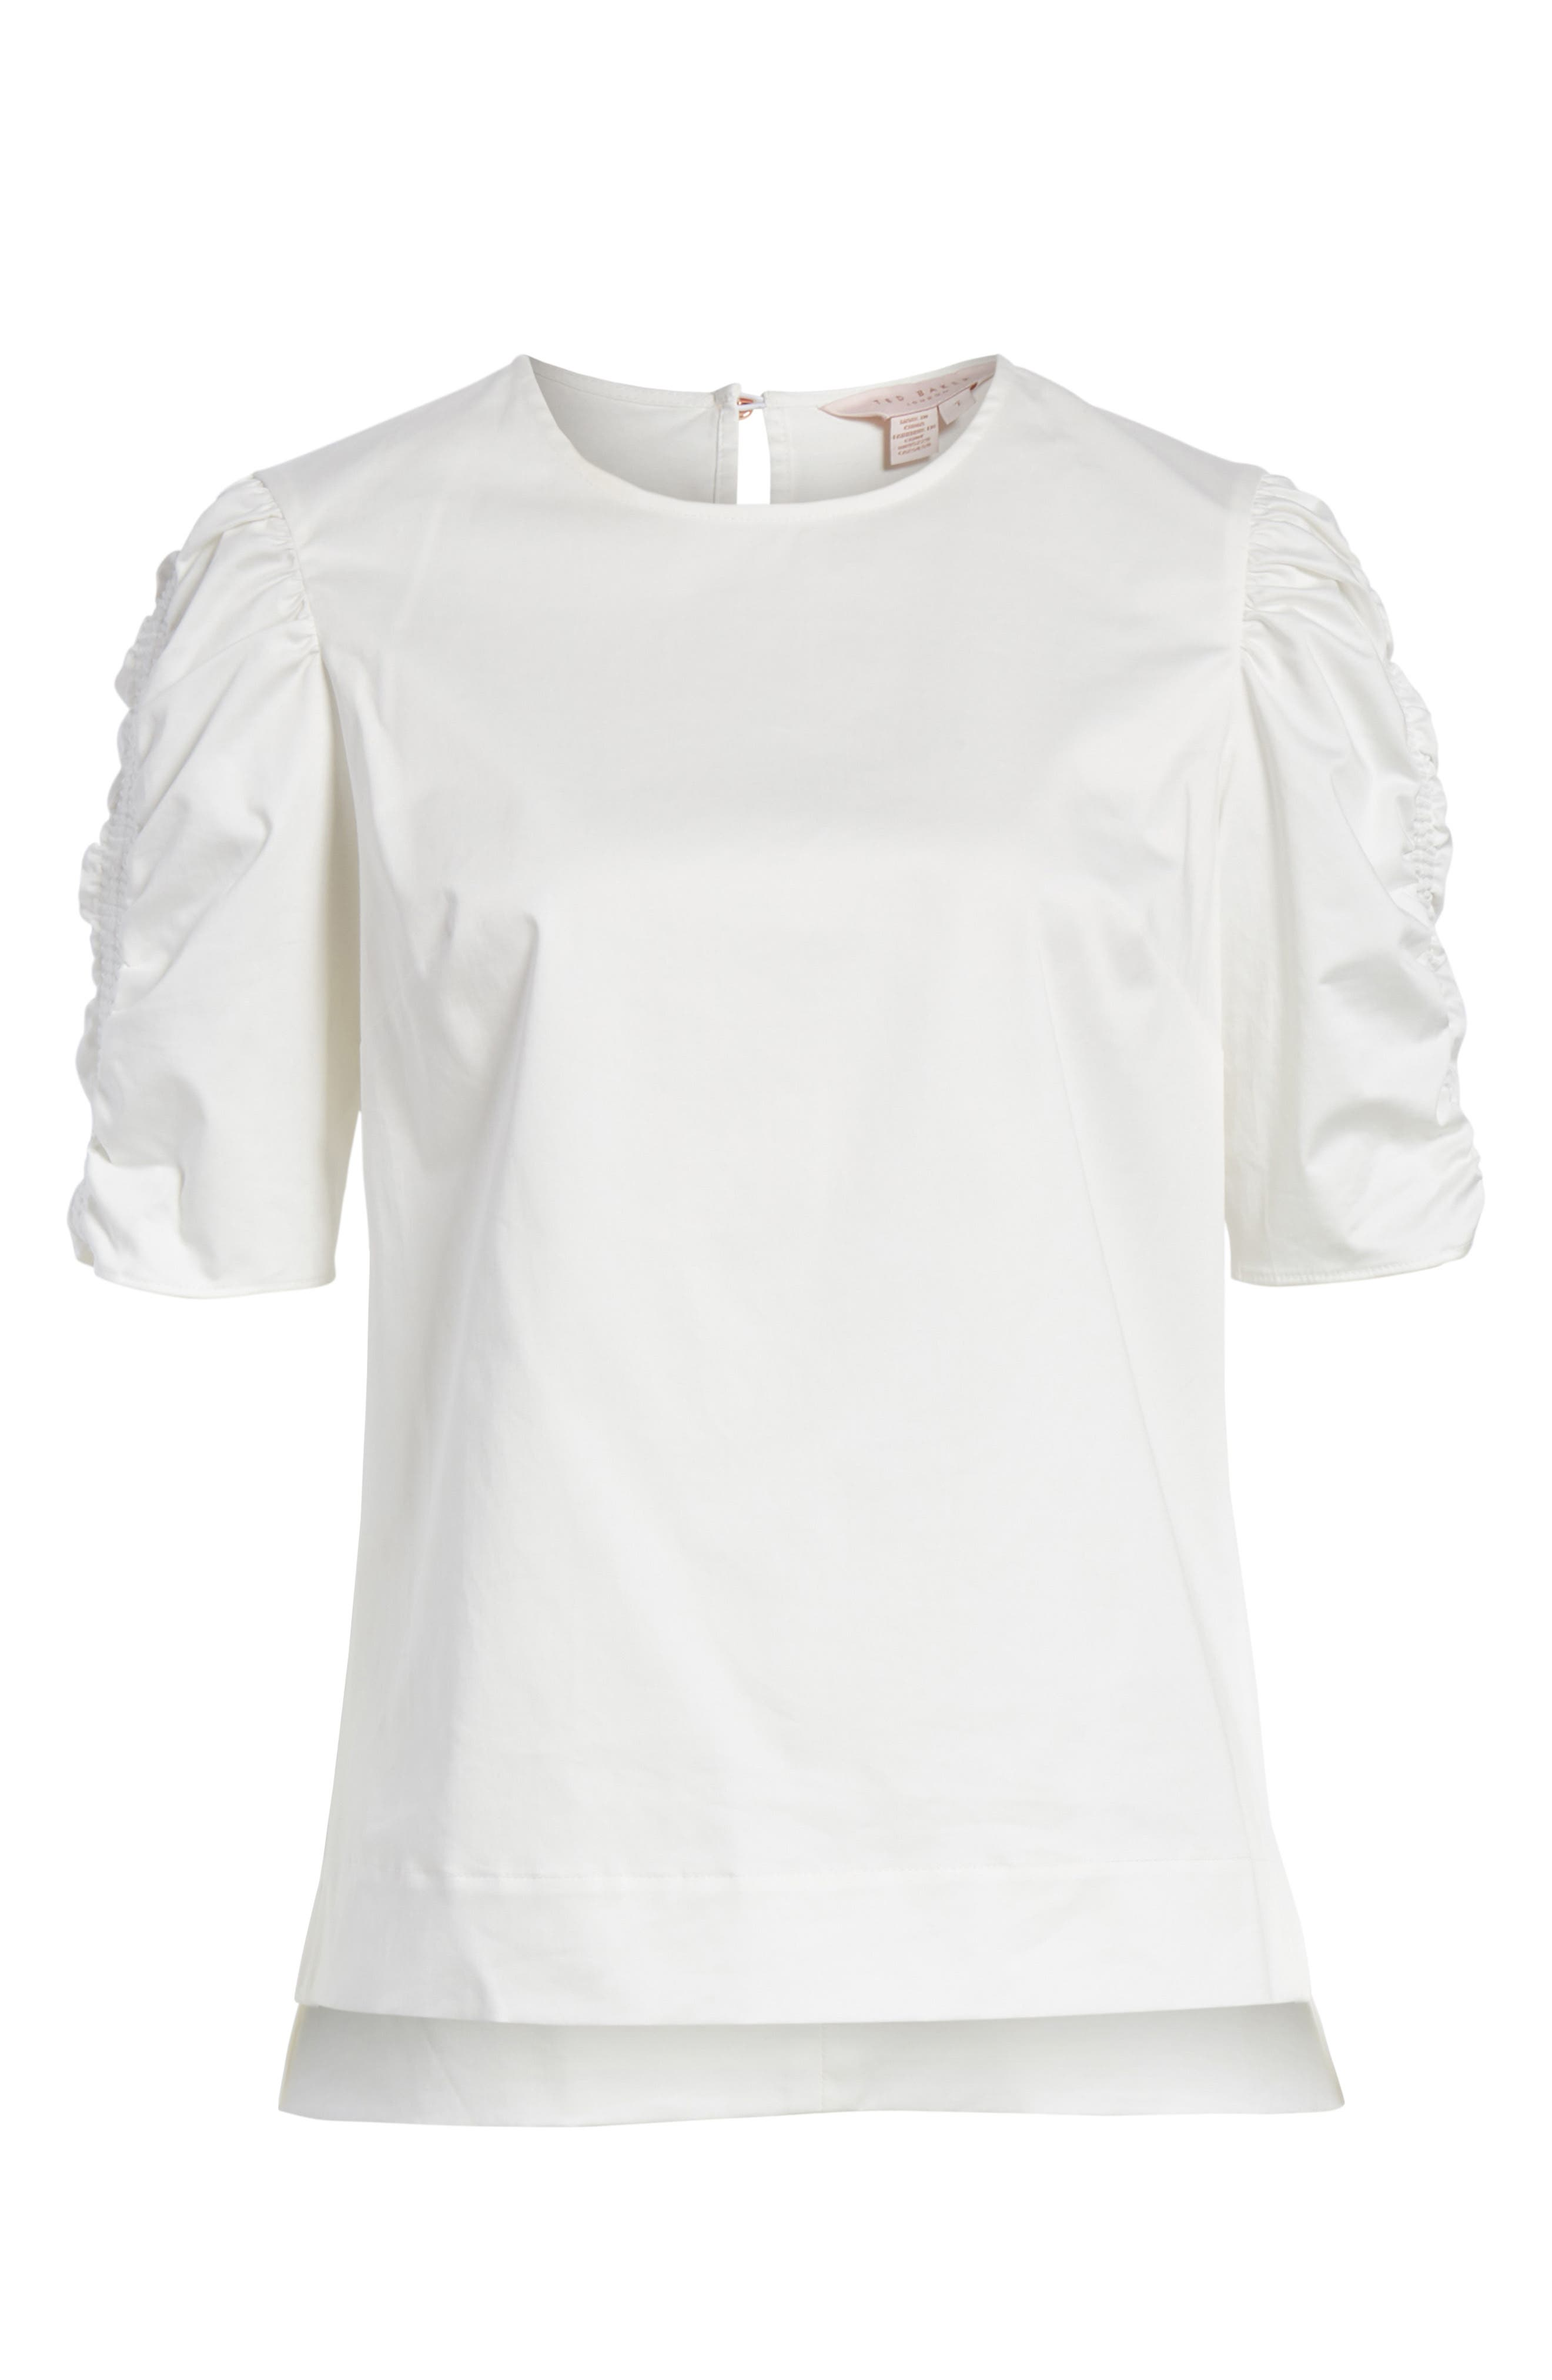 Ruched Sleeve Top,                             Alternate thumbnail 6, color,                             White